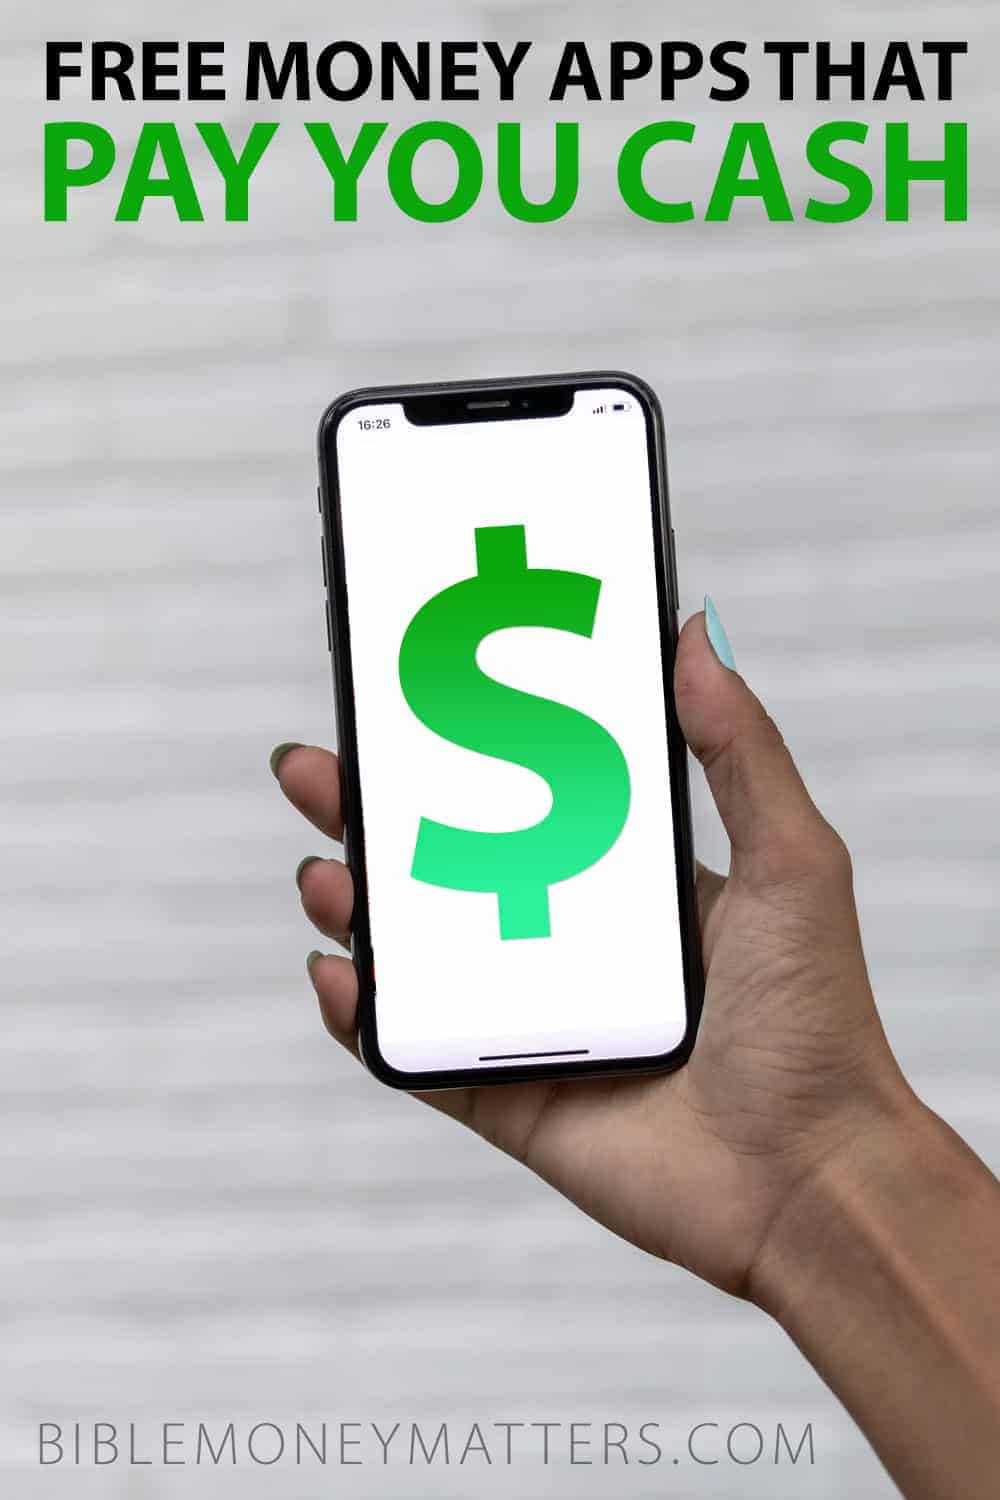 23 Free Money Apps That Pay You Cash